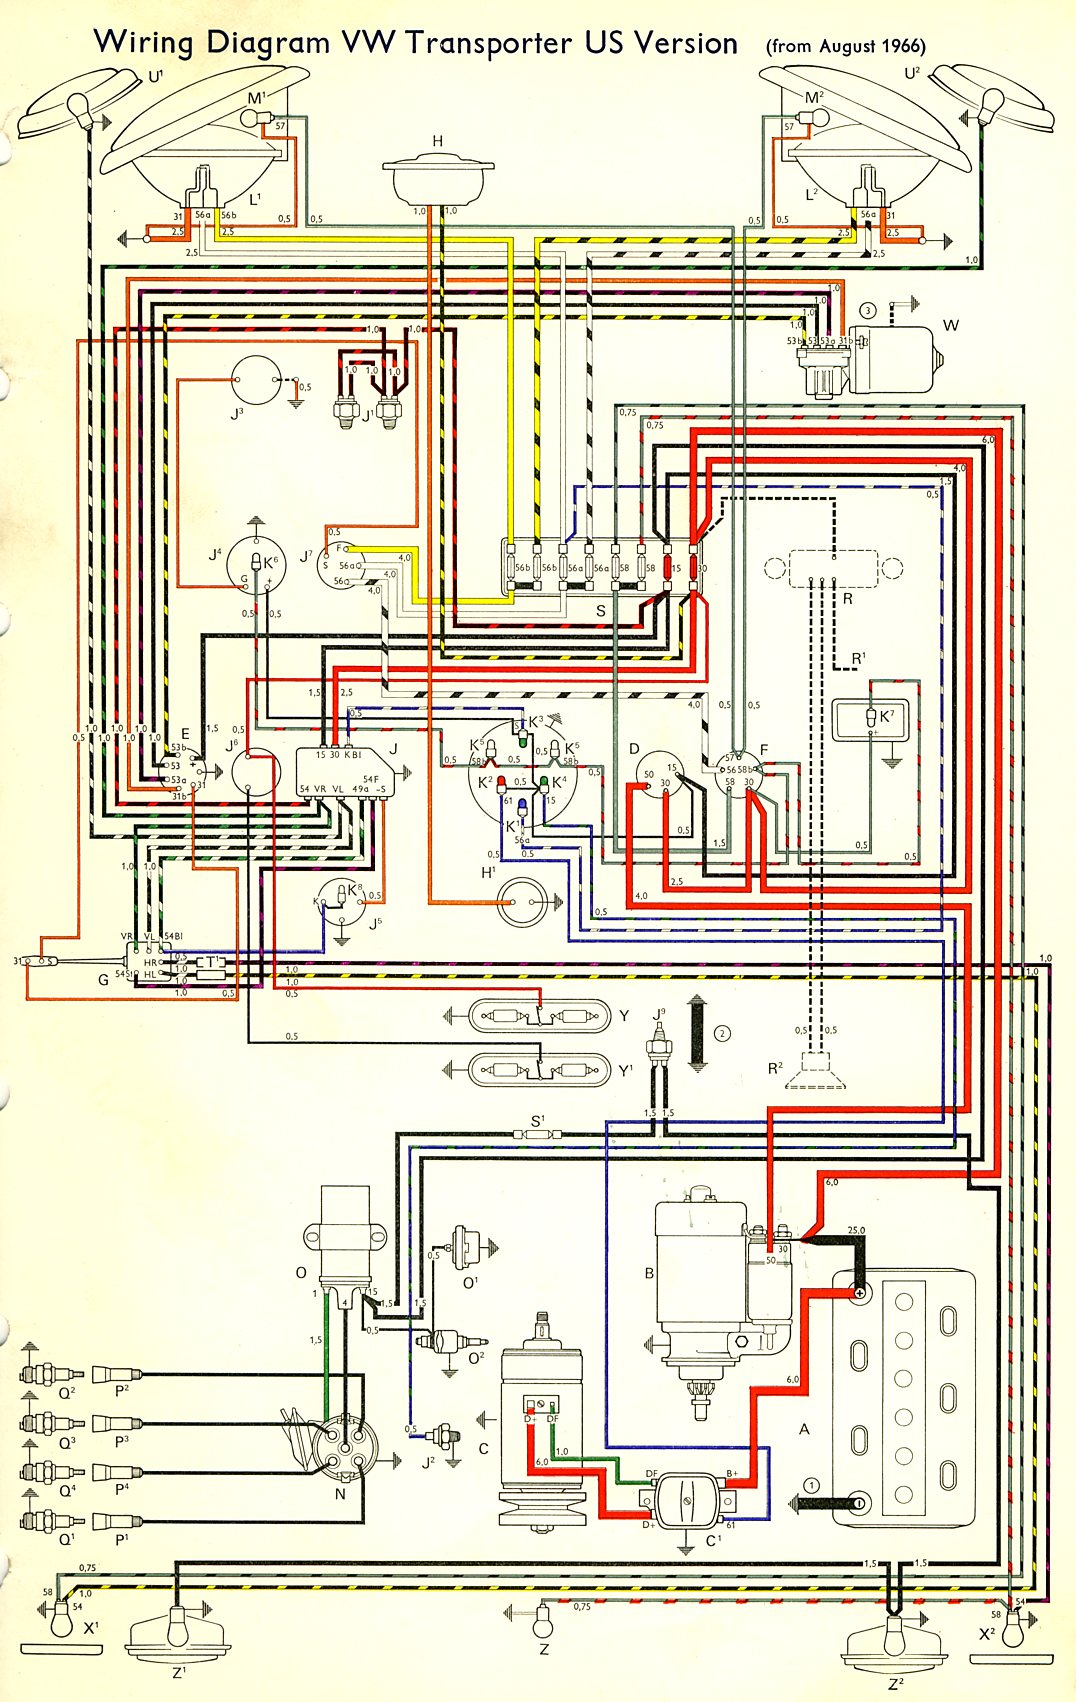 bus_67_USA 1967 bus wiring diagram (usa) thegoldenbug com 1971 vw bus wiring diagram at mr168.co